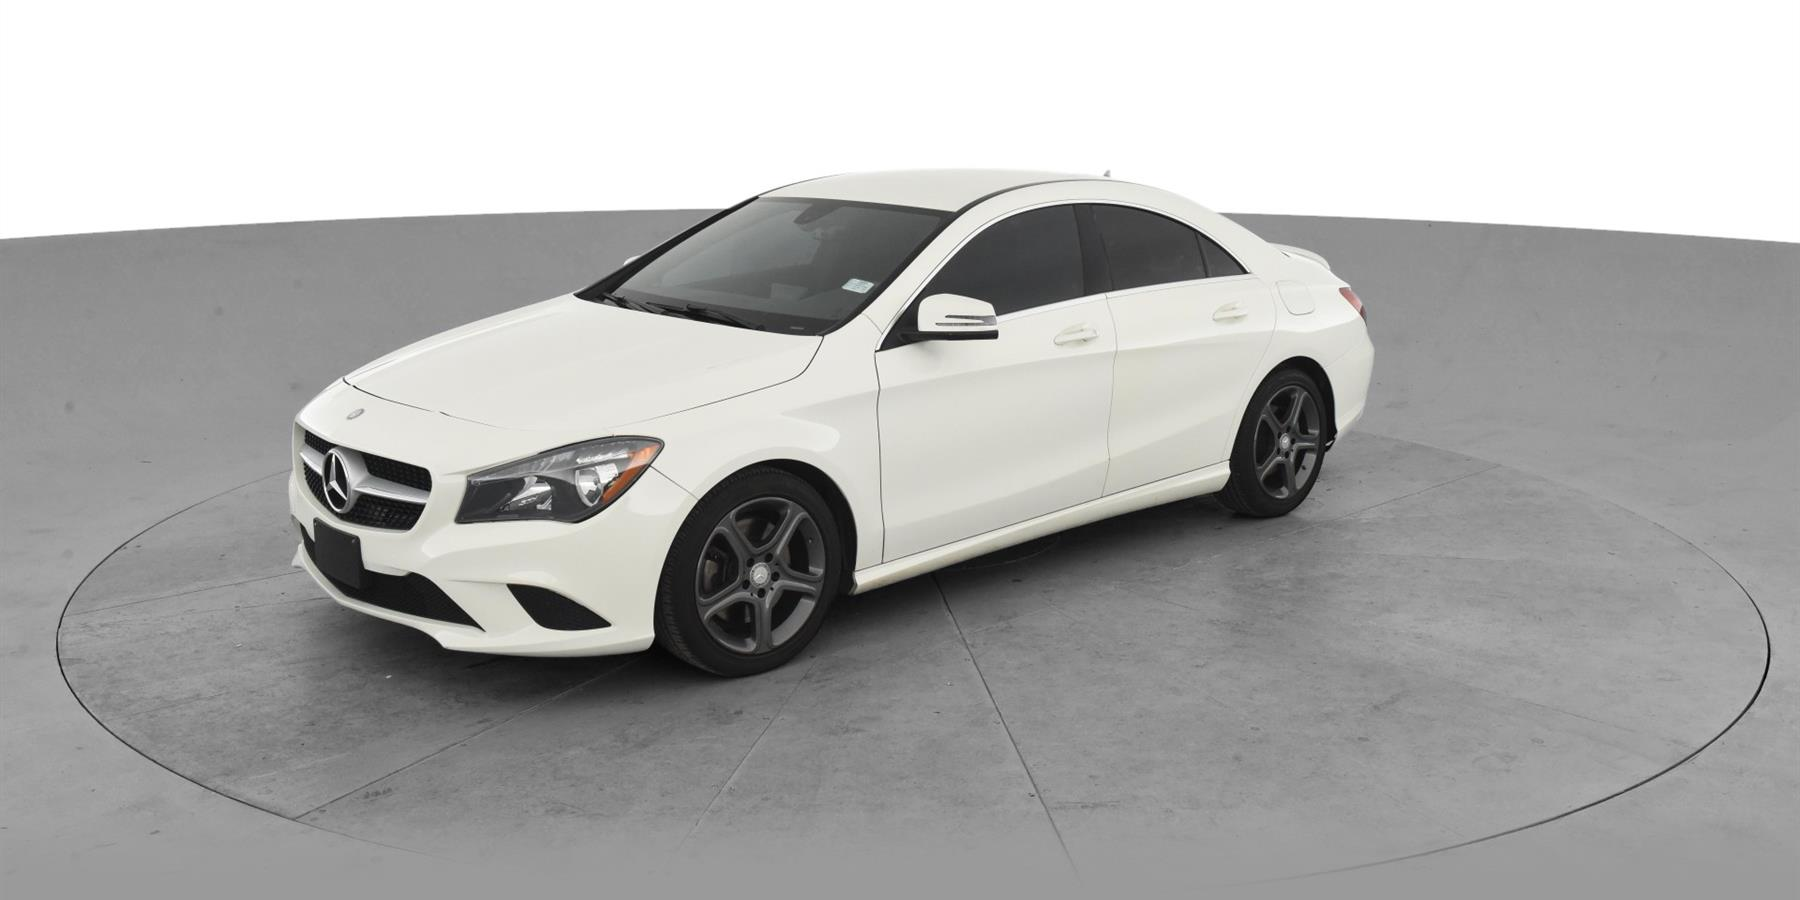 2014 Mercedes-Benz CLA-Class CLA 250 Coupe 4D for Sale